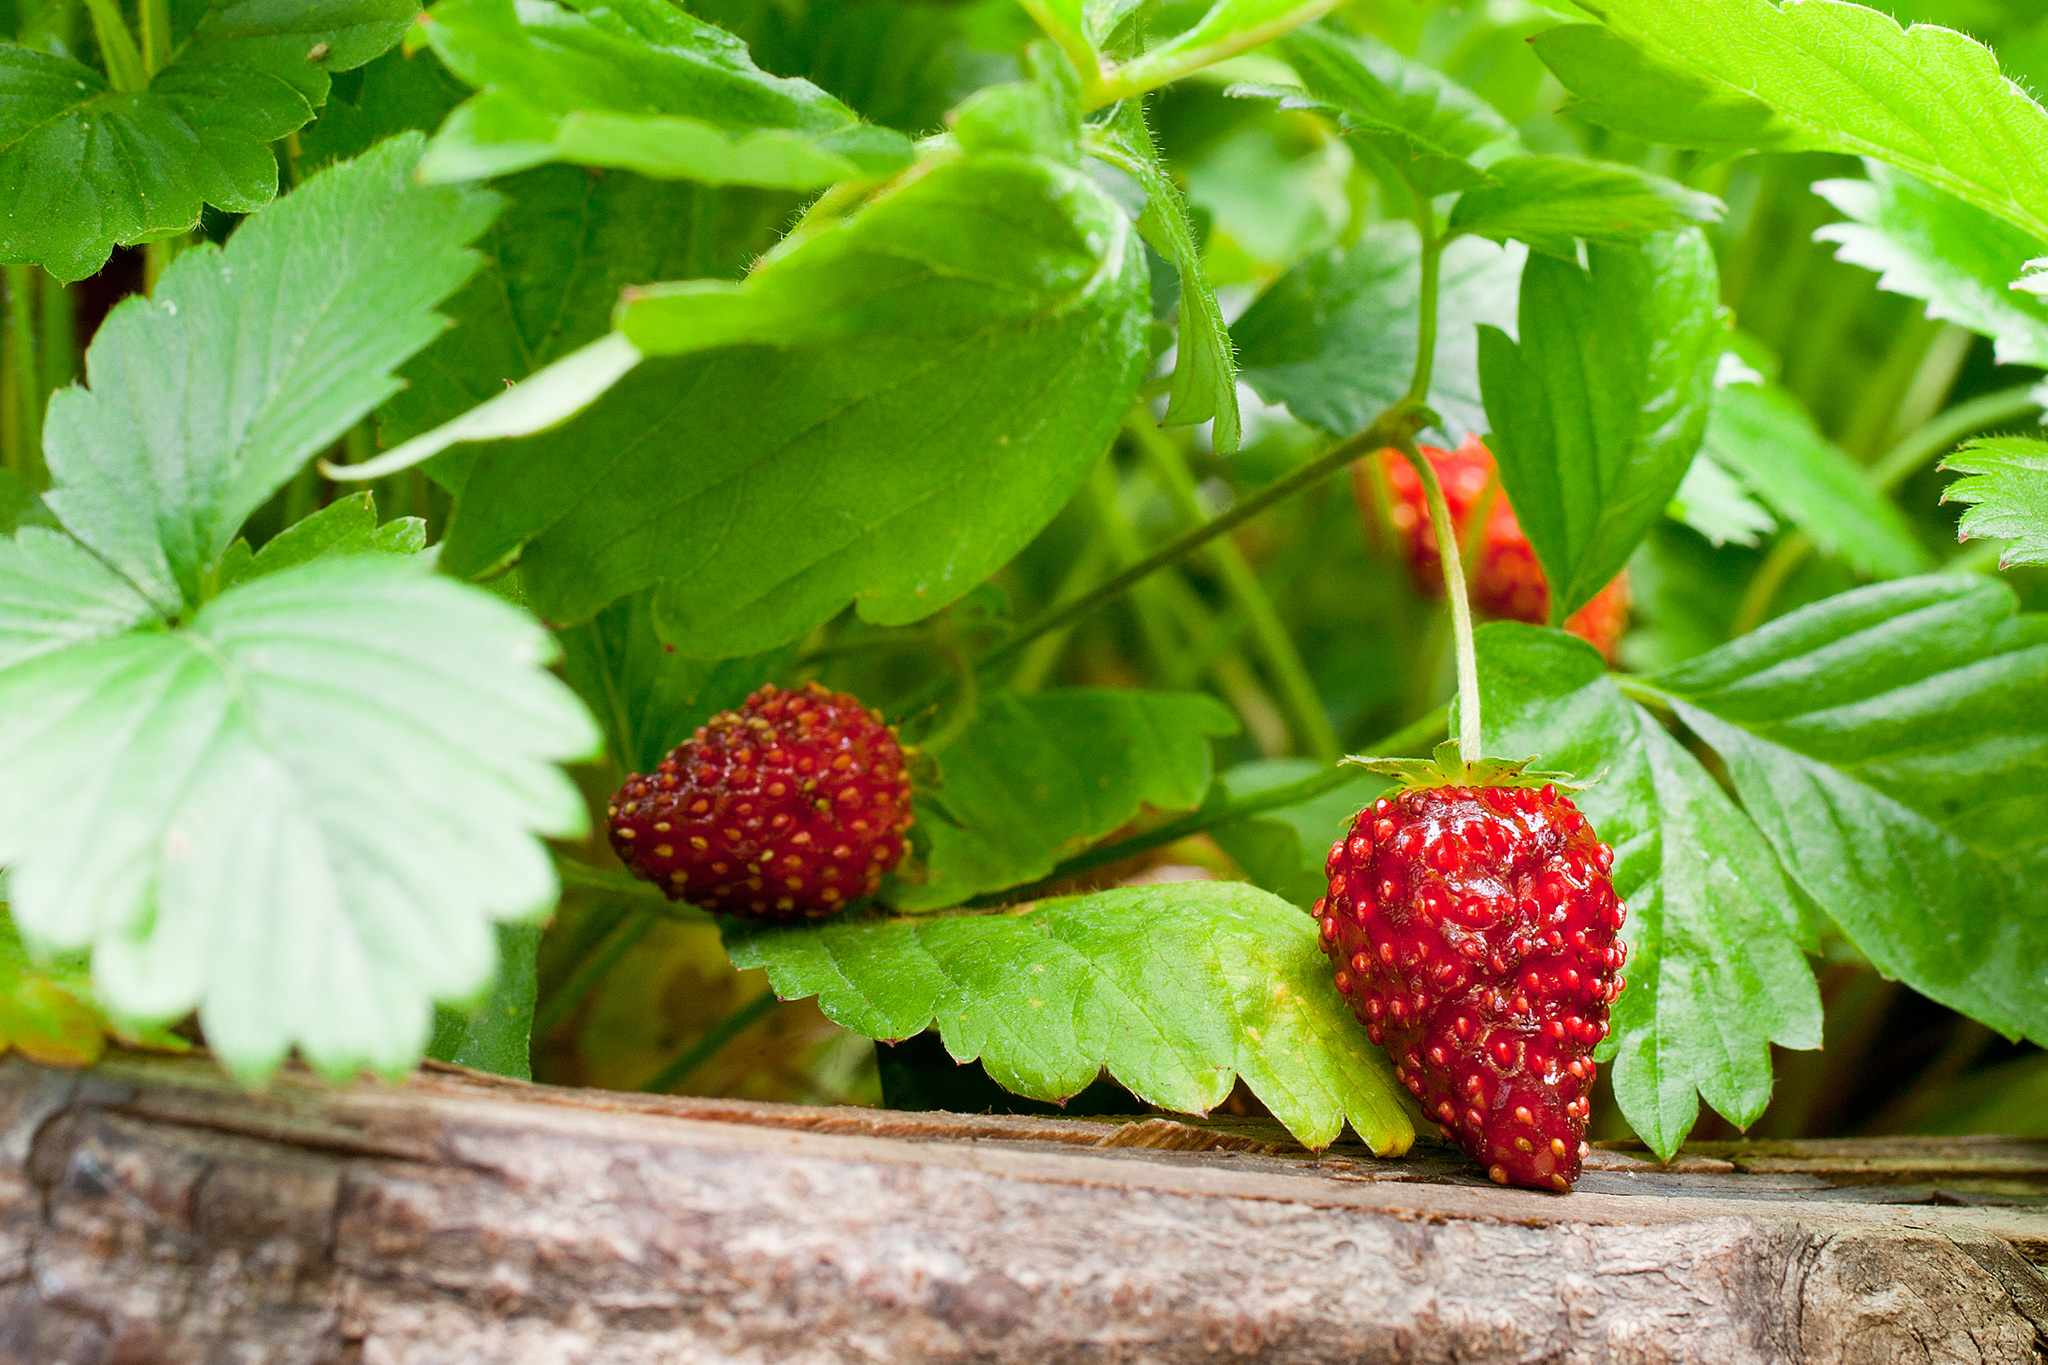 Fruits on strawberry plant